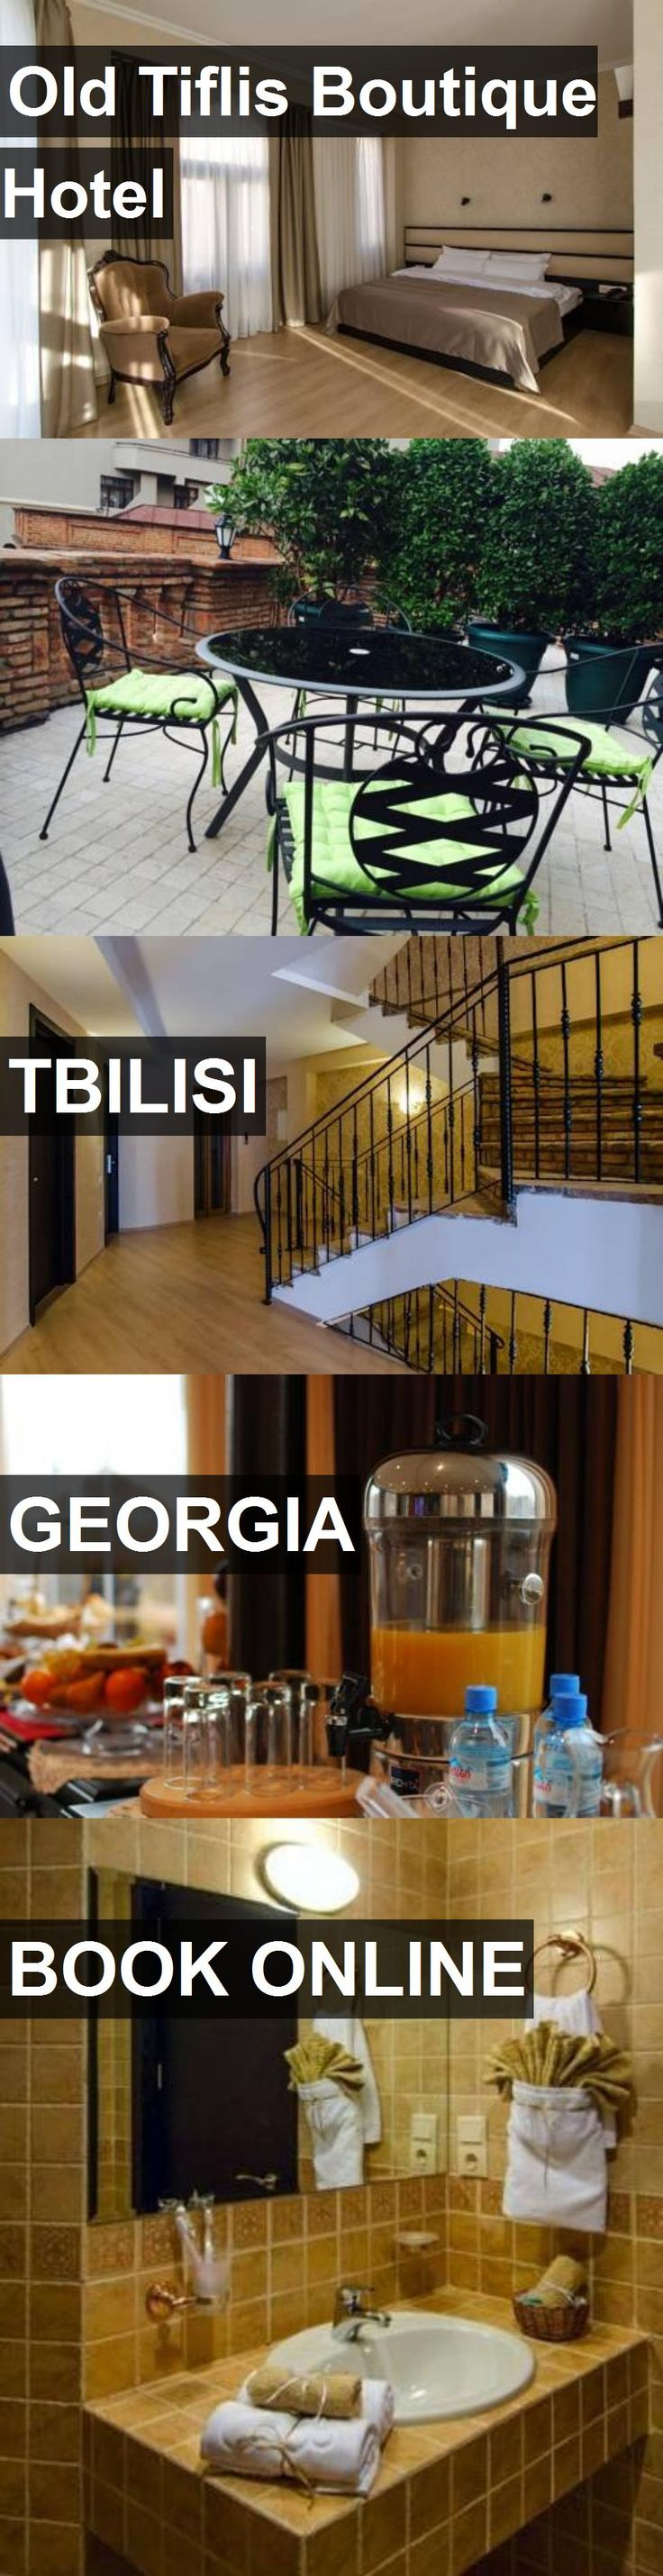 Old Tiflis Boutique Hotel in Tbilisi, Georgia. For more information, photos, reviews and best prices please follow the link. #Georgia #Tbilisi #travel #vacation #hotel